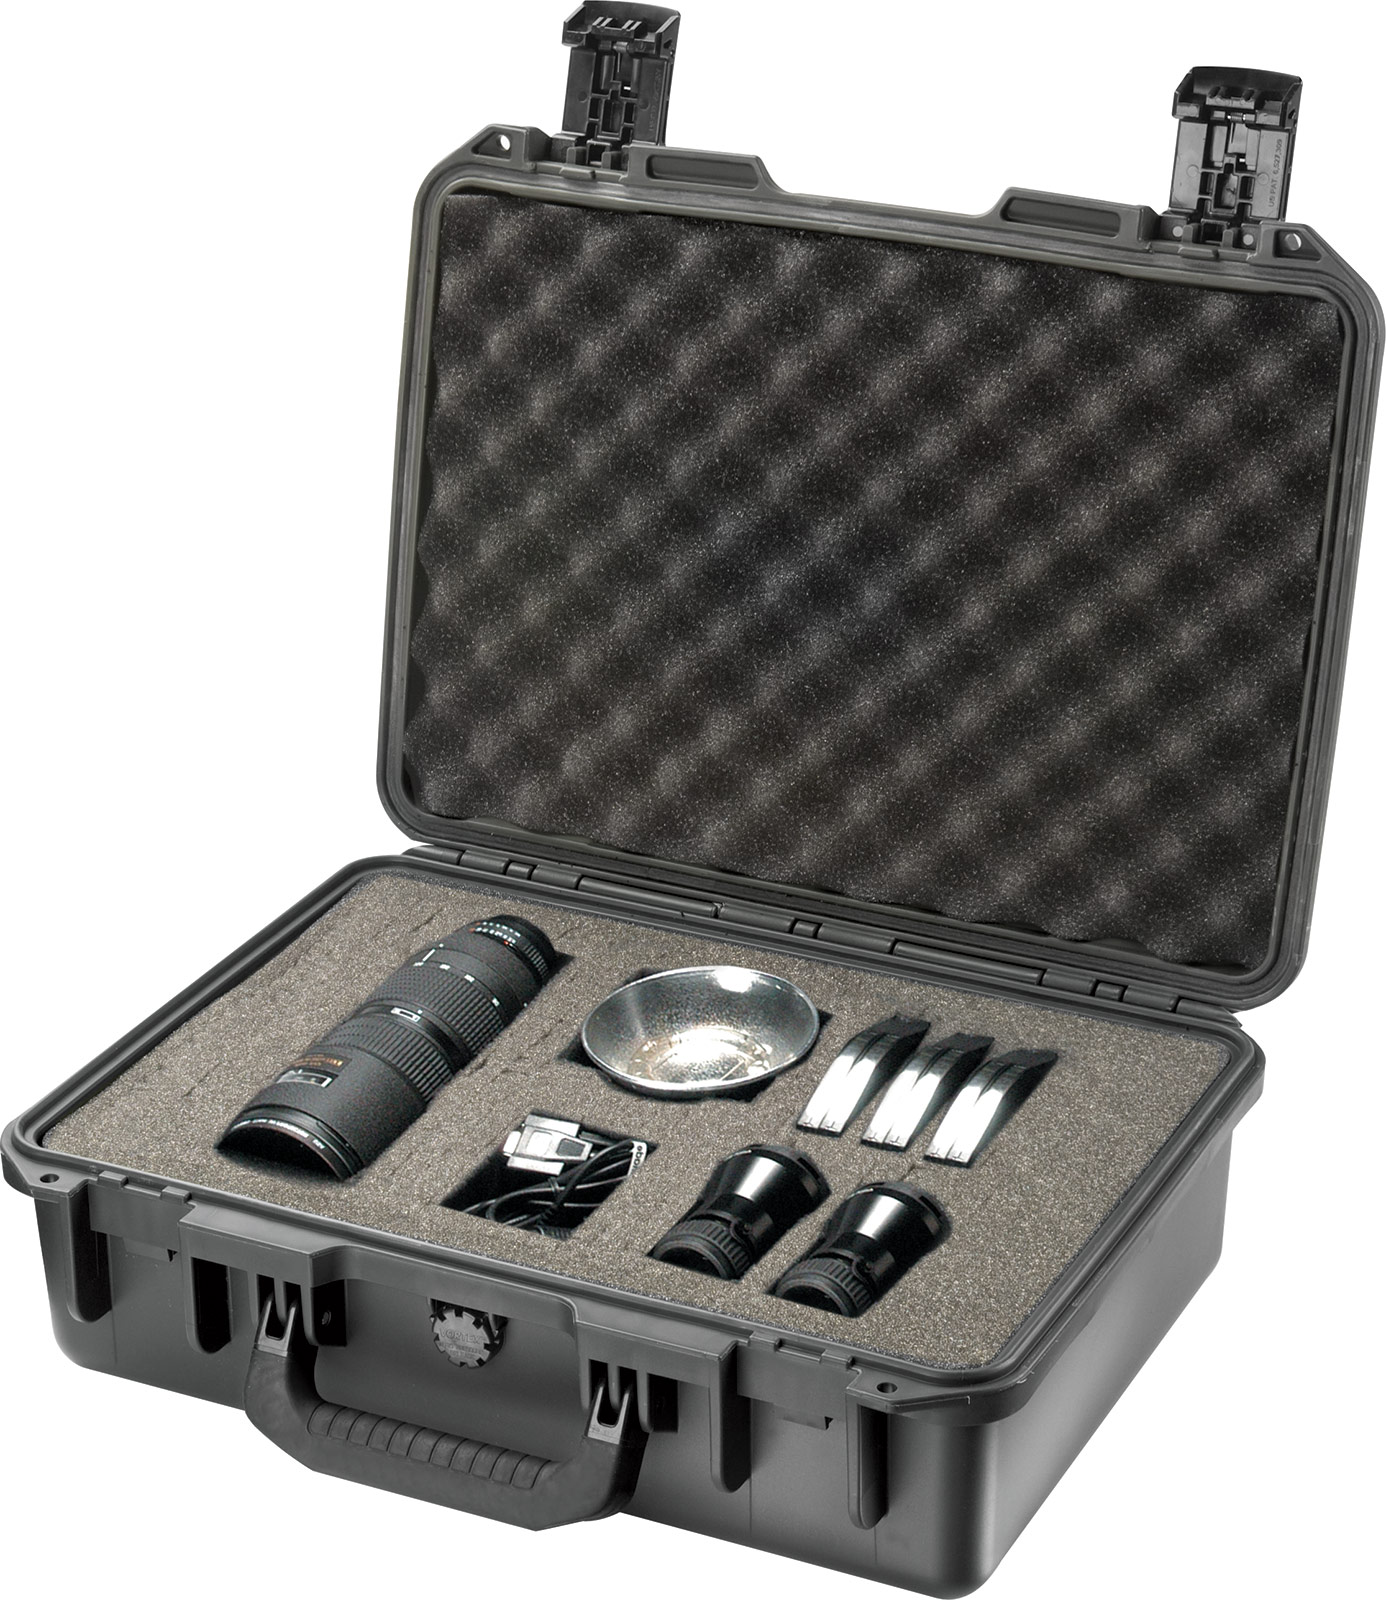 pelican im2300 light kit camera case